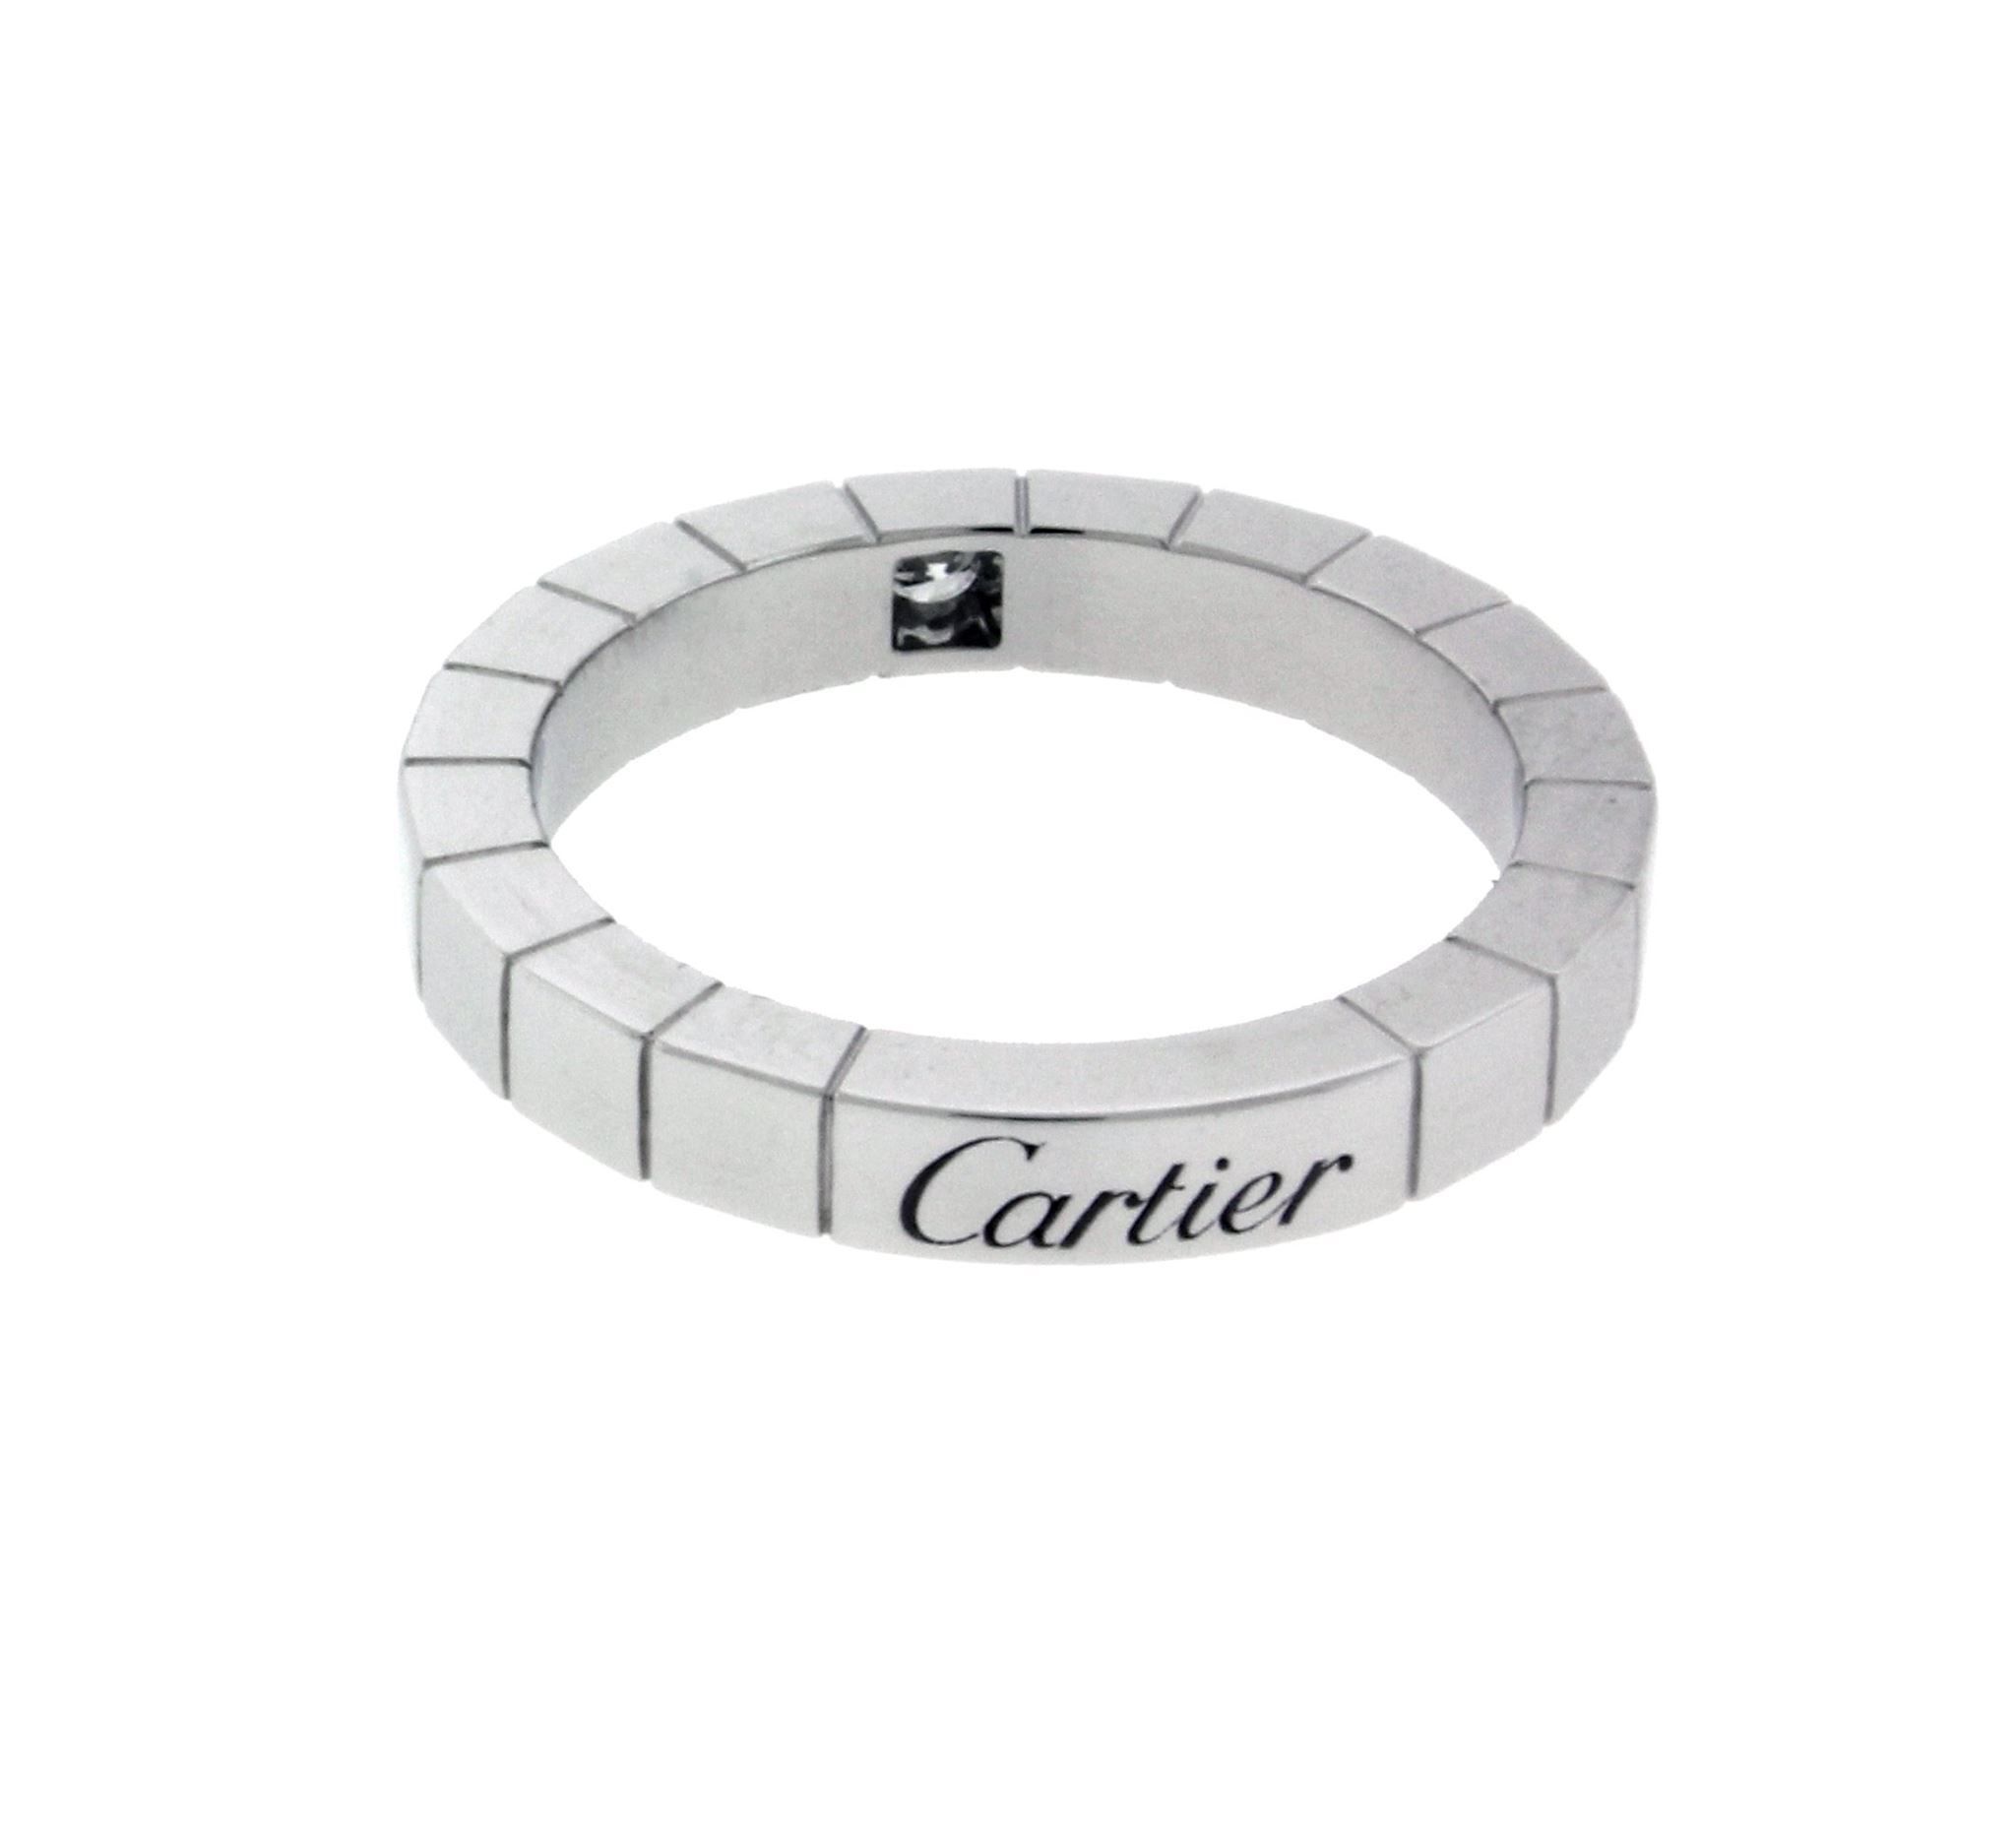 63b2facac8917 Details about Cartier Lanieres diamond 18k white gold band ring size 50 (US  5.25)